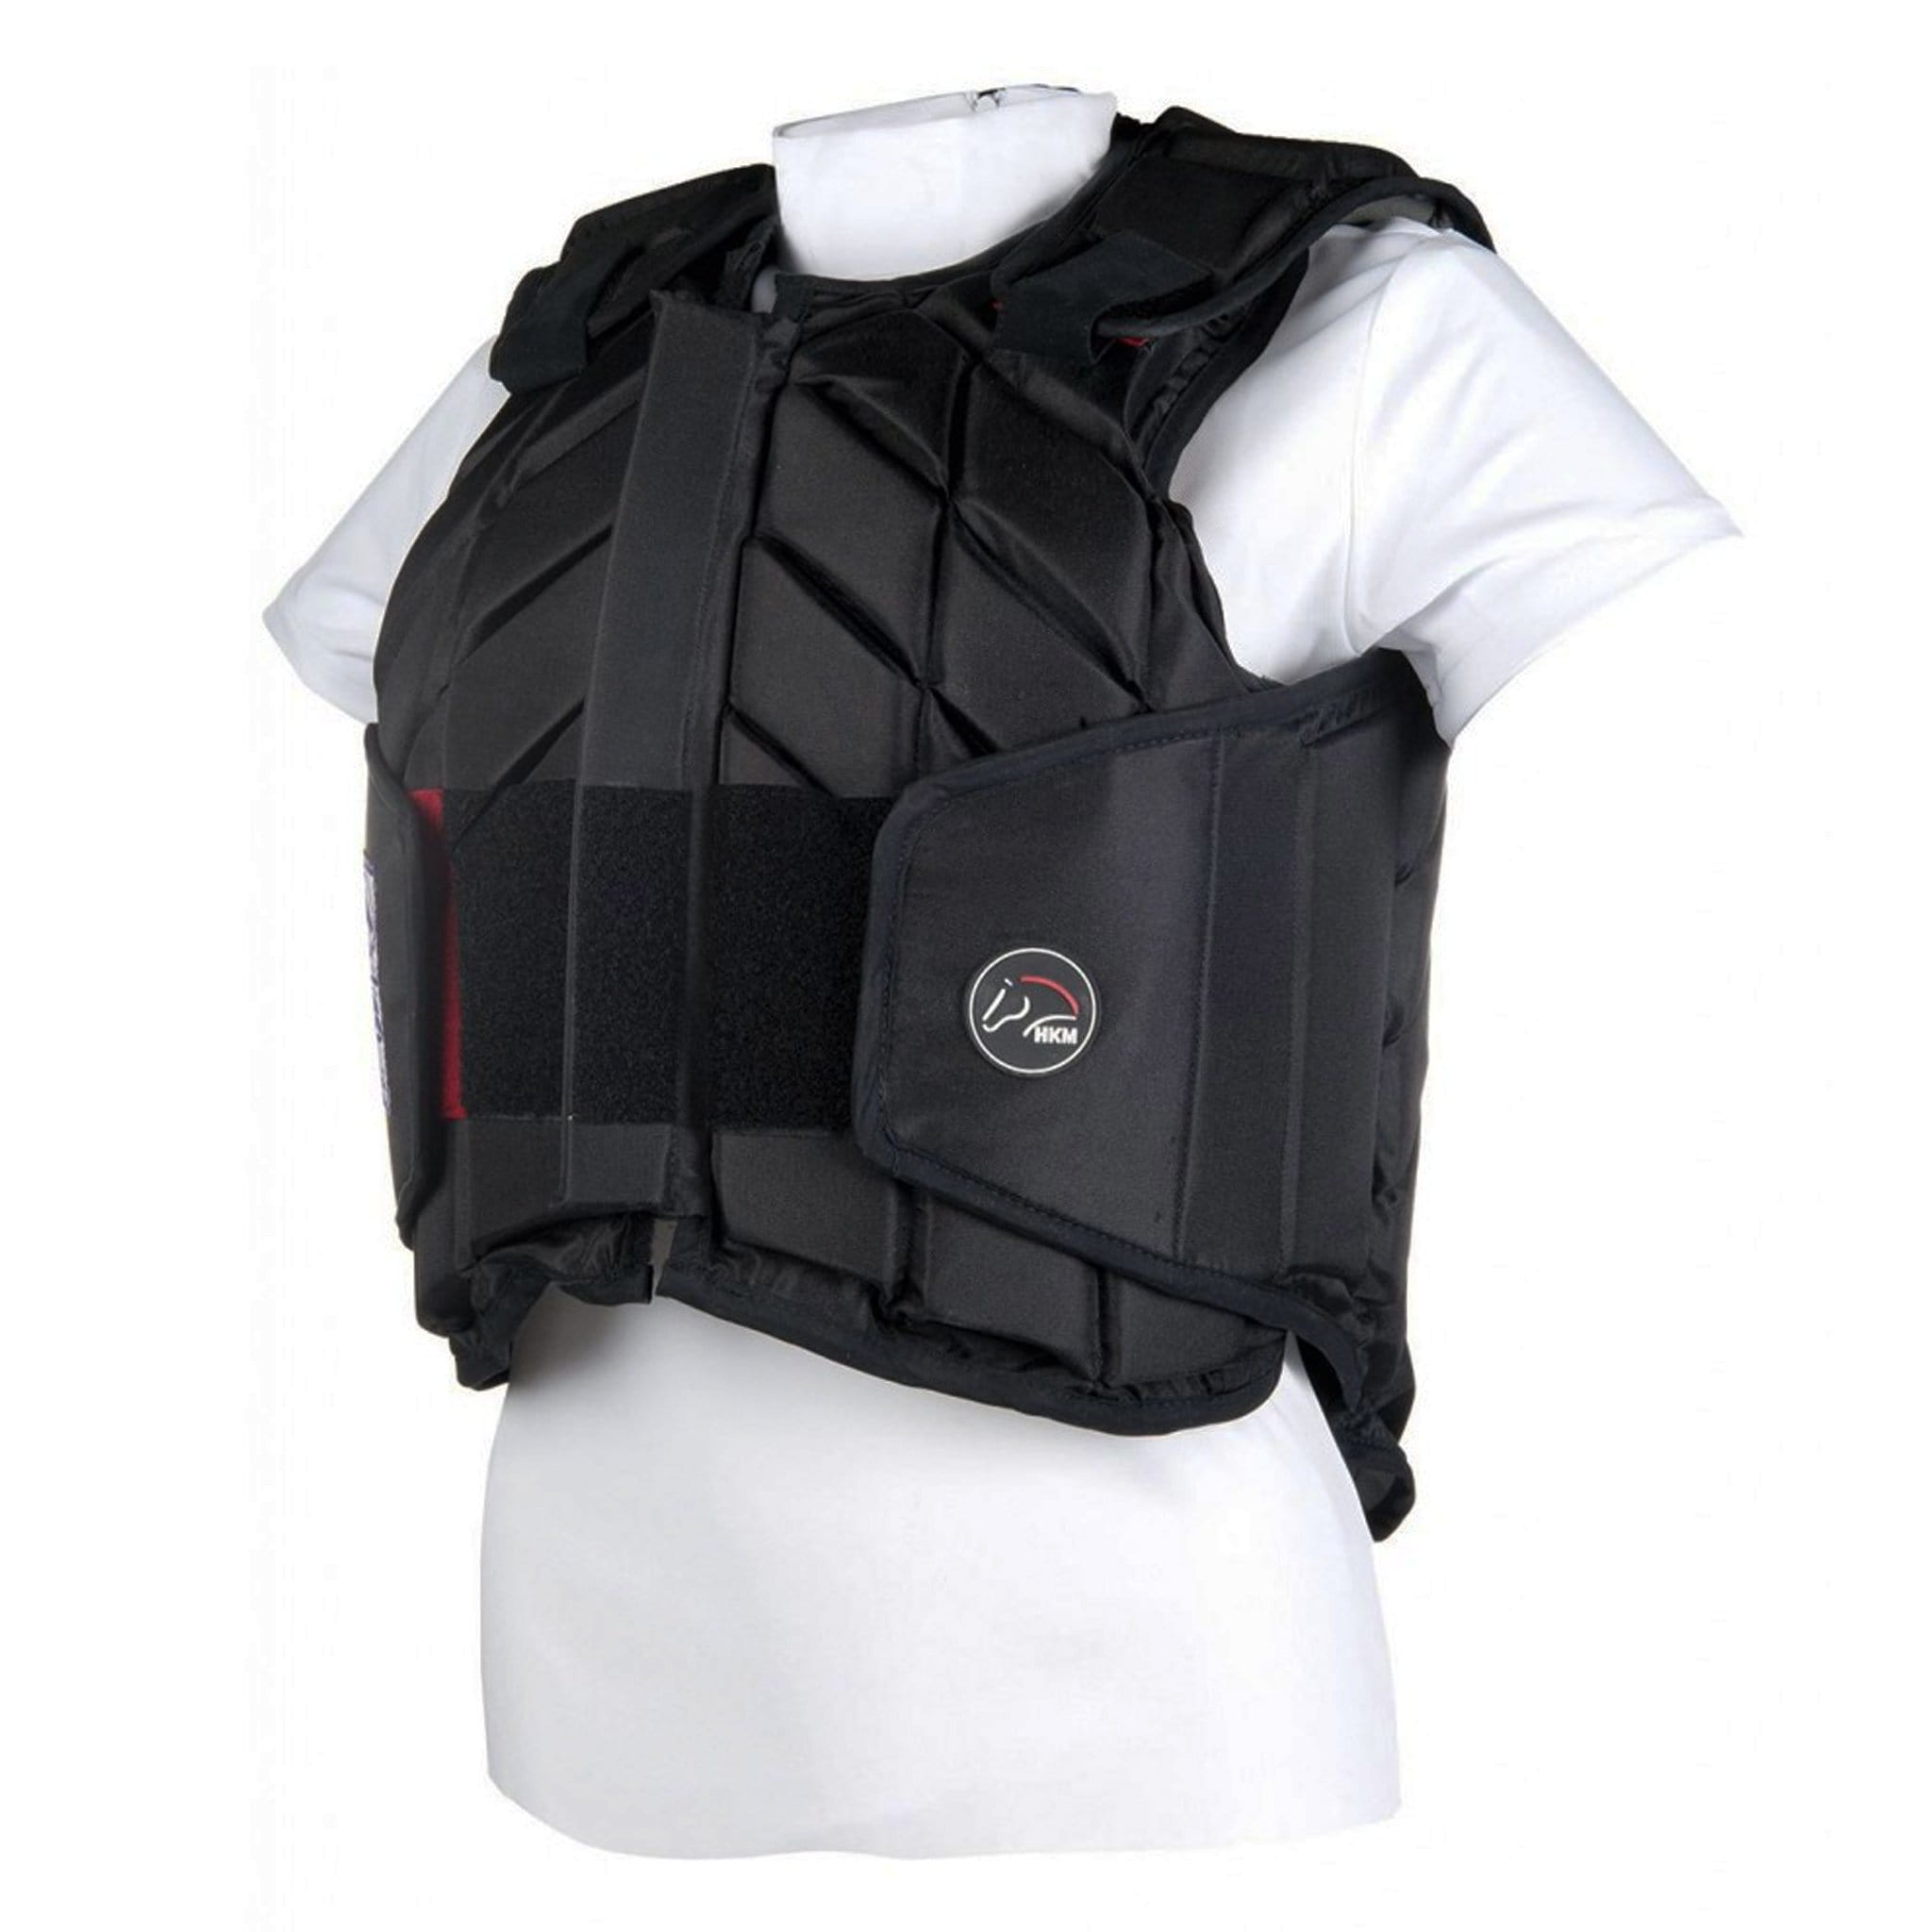 HKM Easy Fit Body Protector 10783 Black Side View